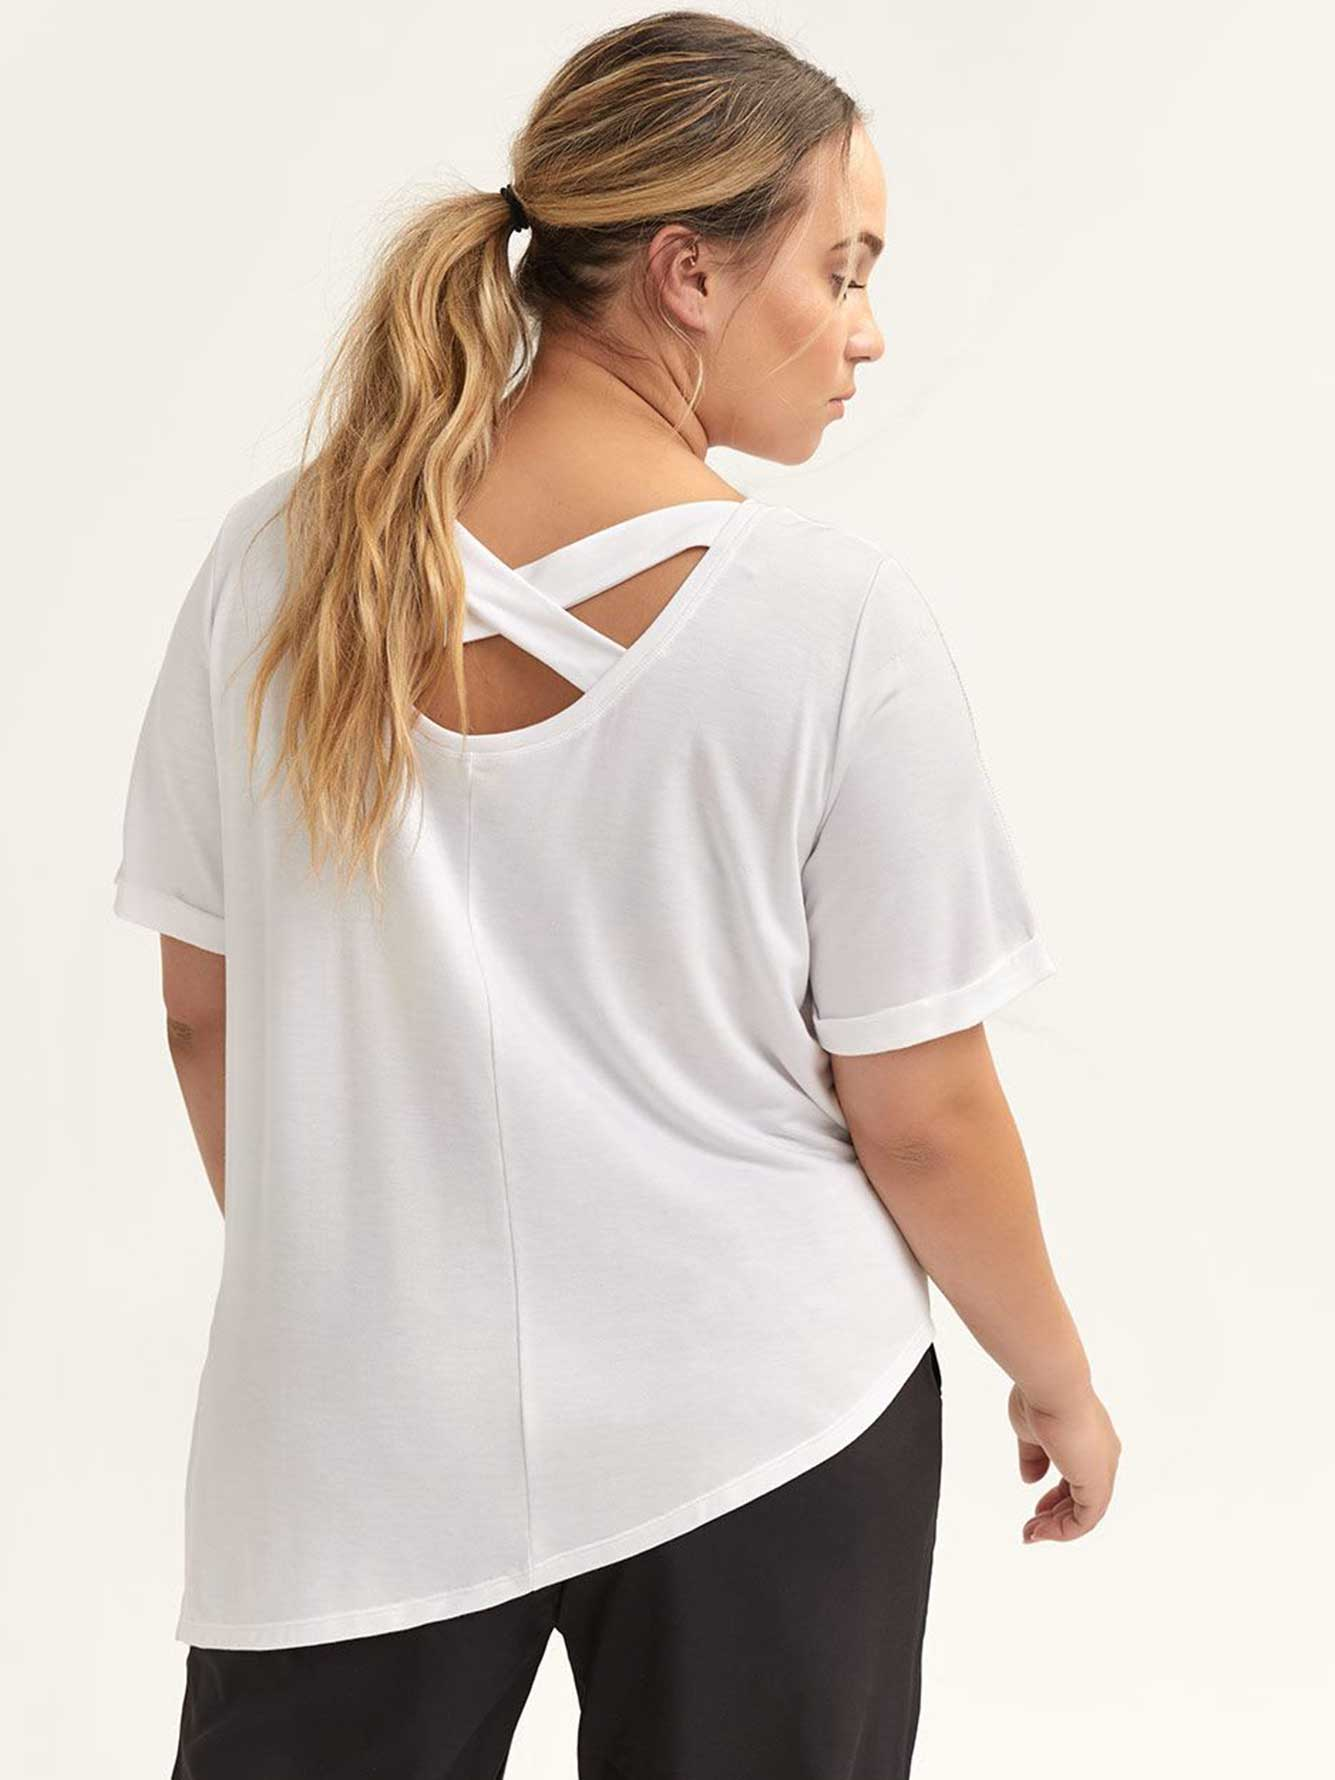 T-Shirt with Crisscross Back - ActiveZone